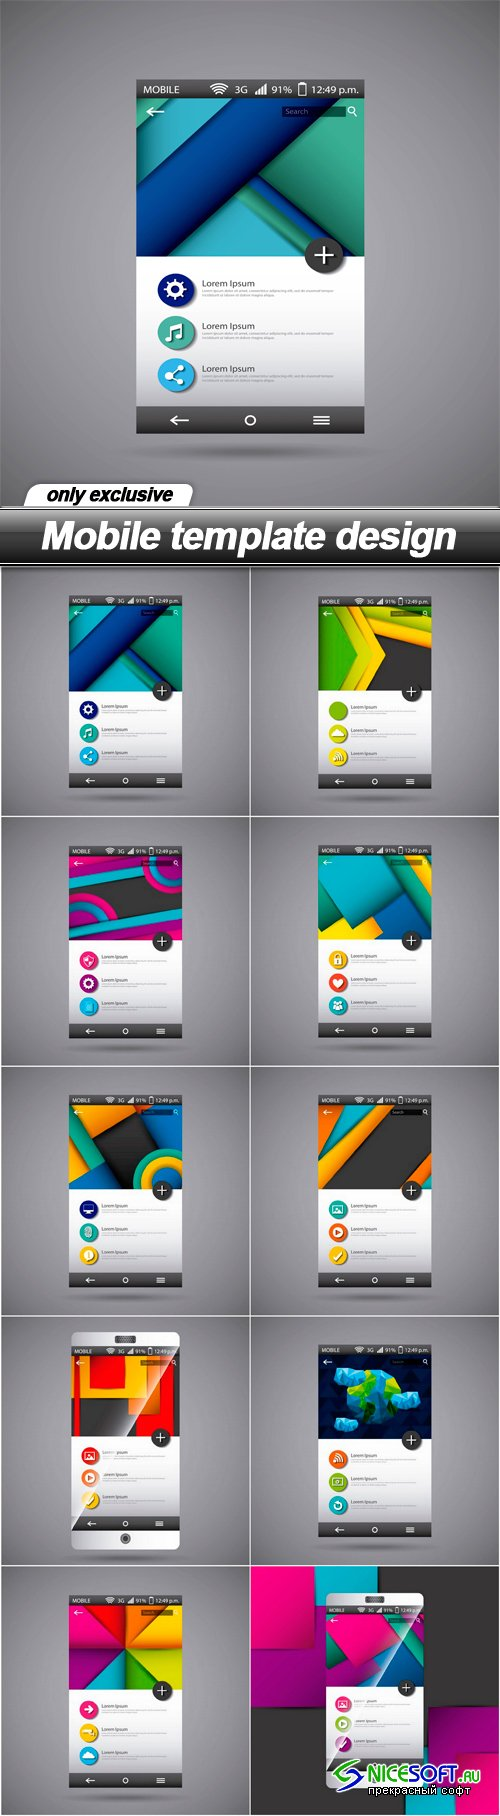 Mobile template design